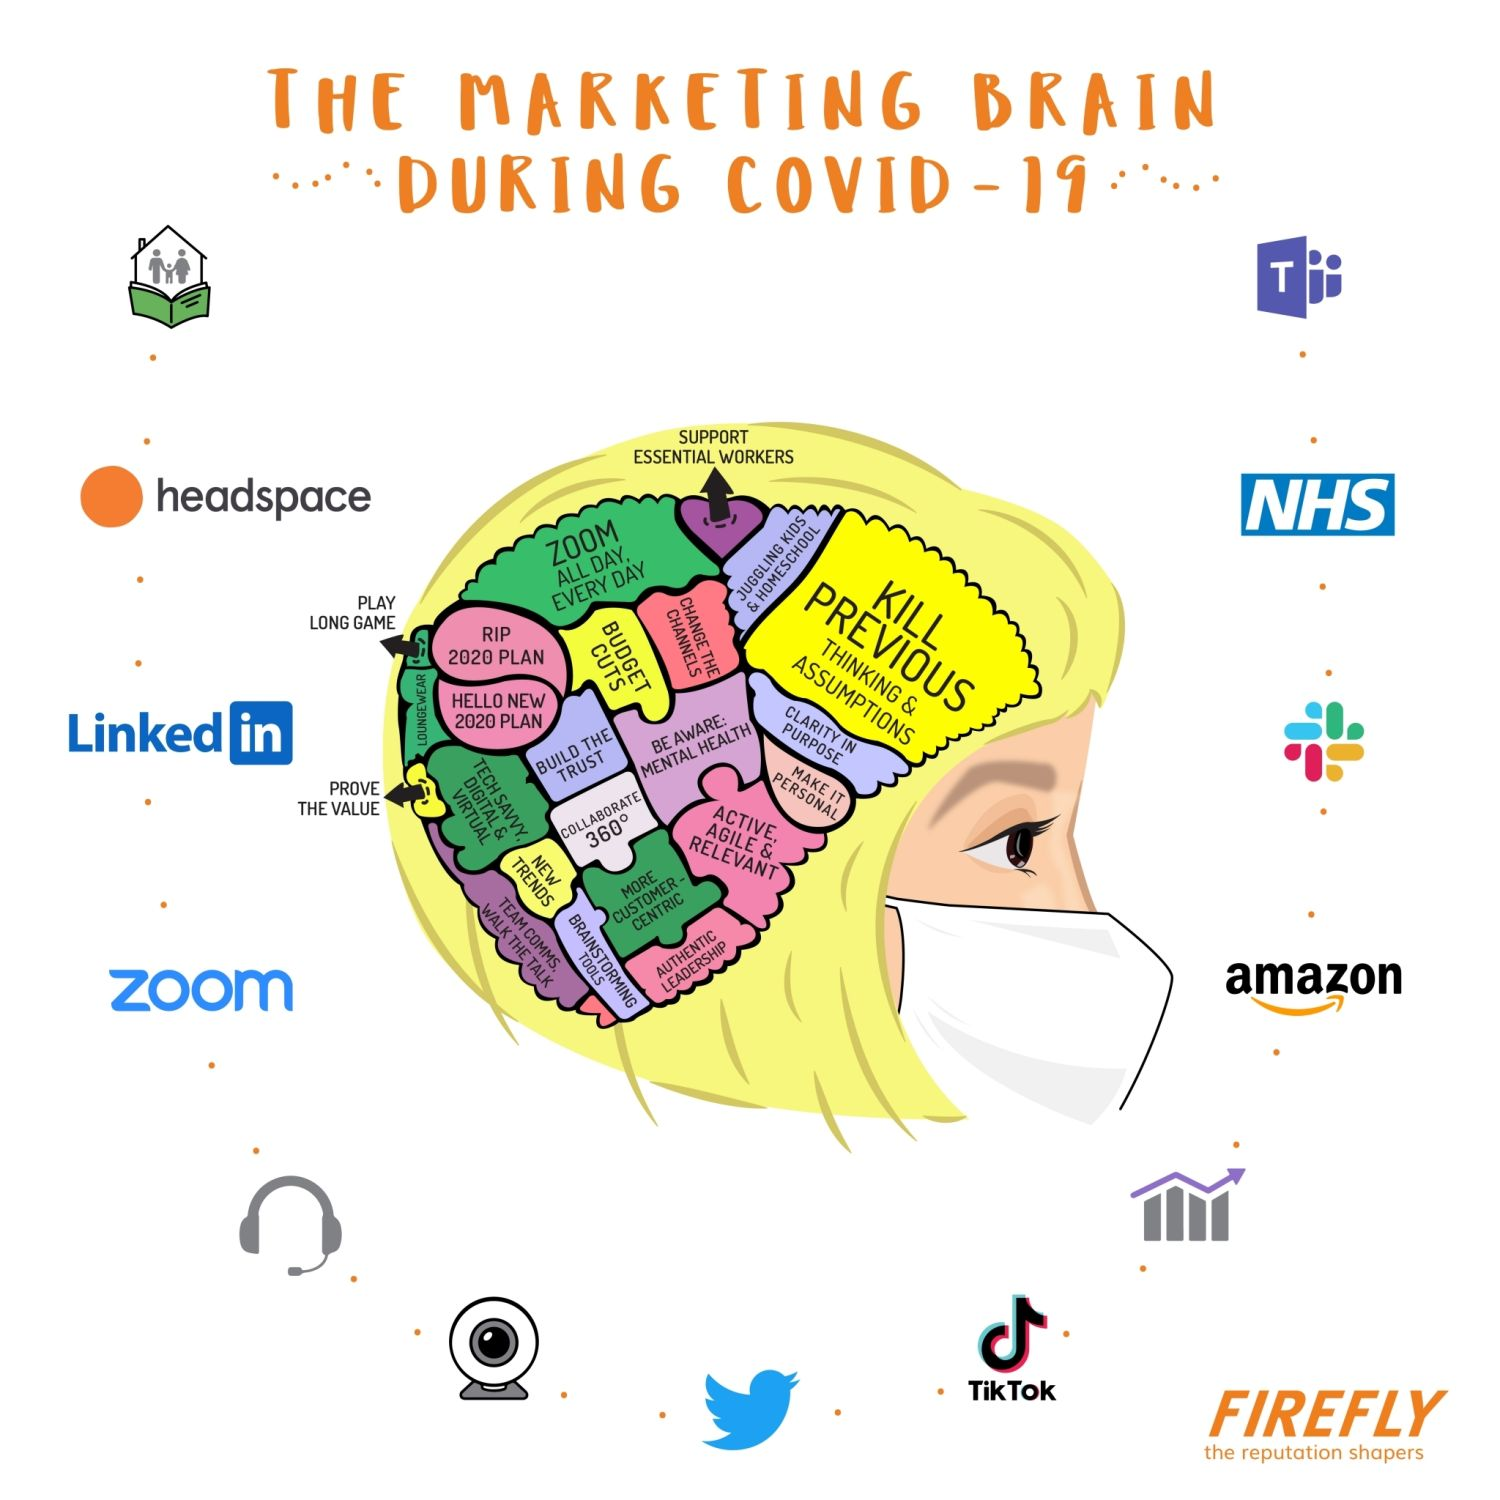 The covid marketing brain: how marketers are thinking and acting in new ways